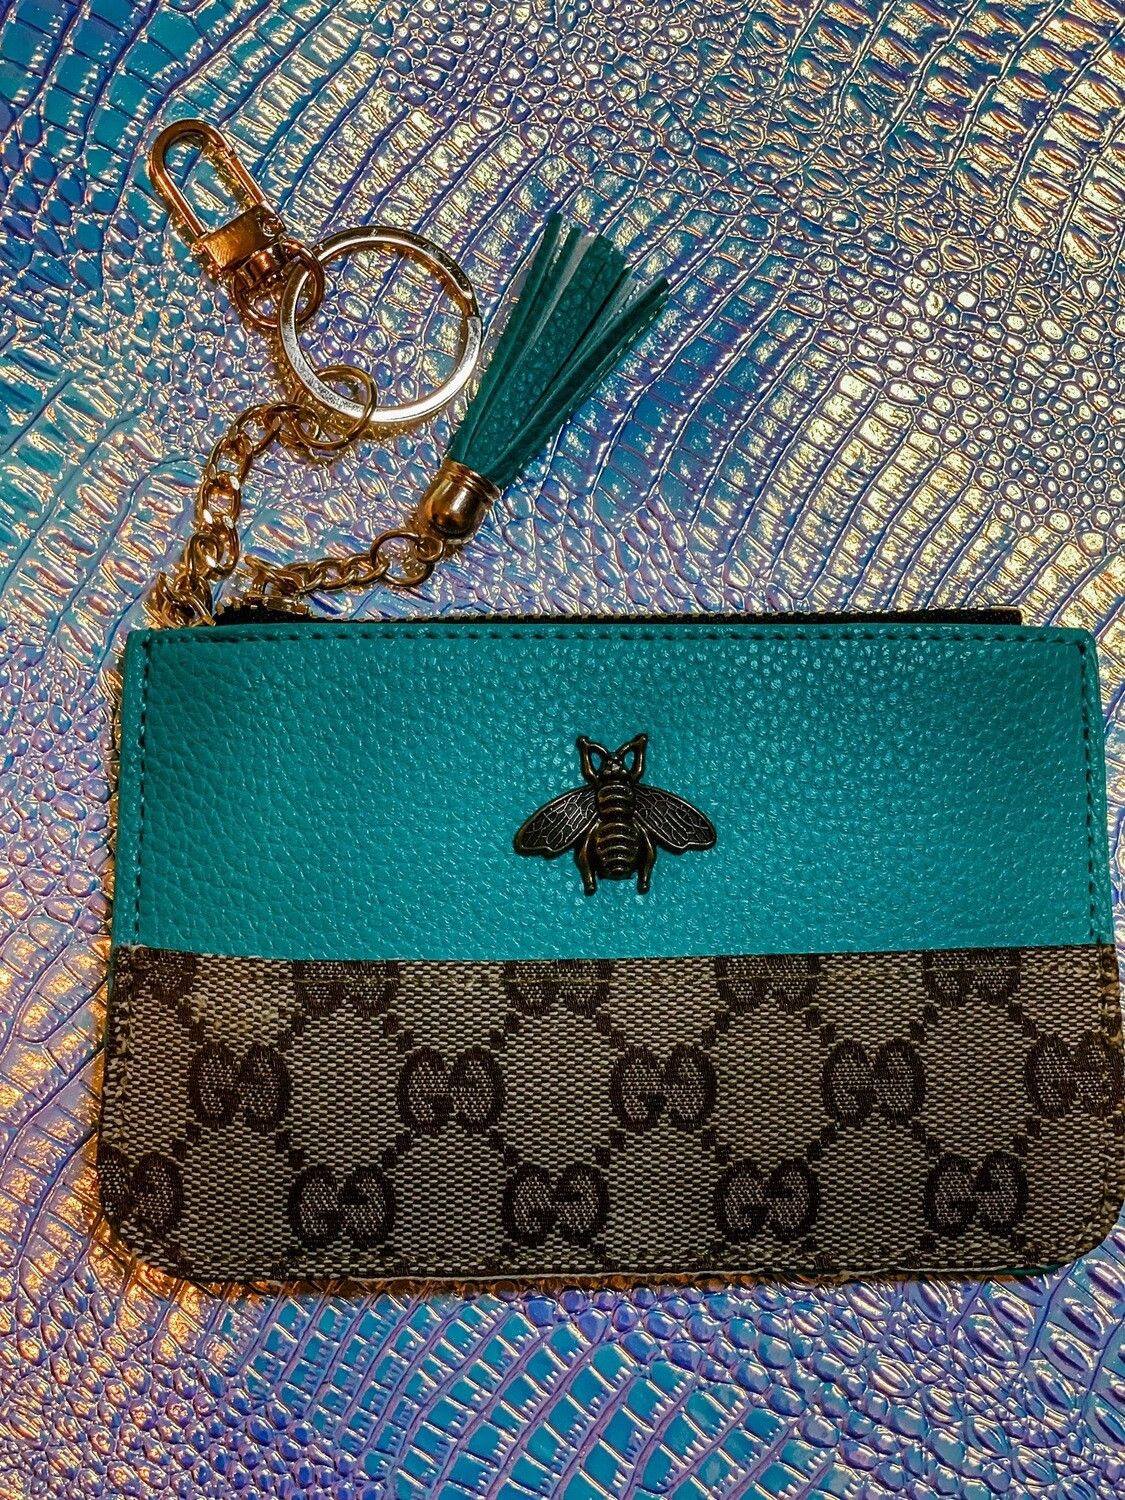 Gucci Bee Turquoise